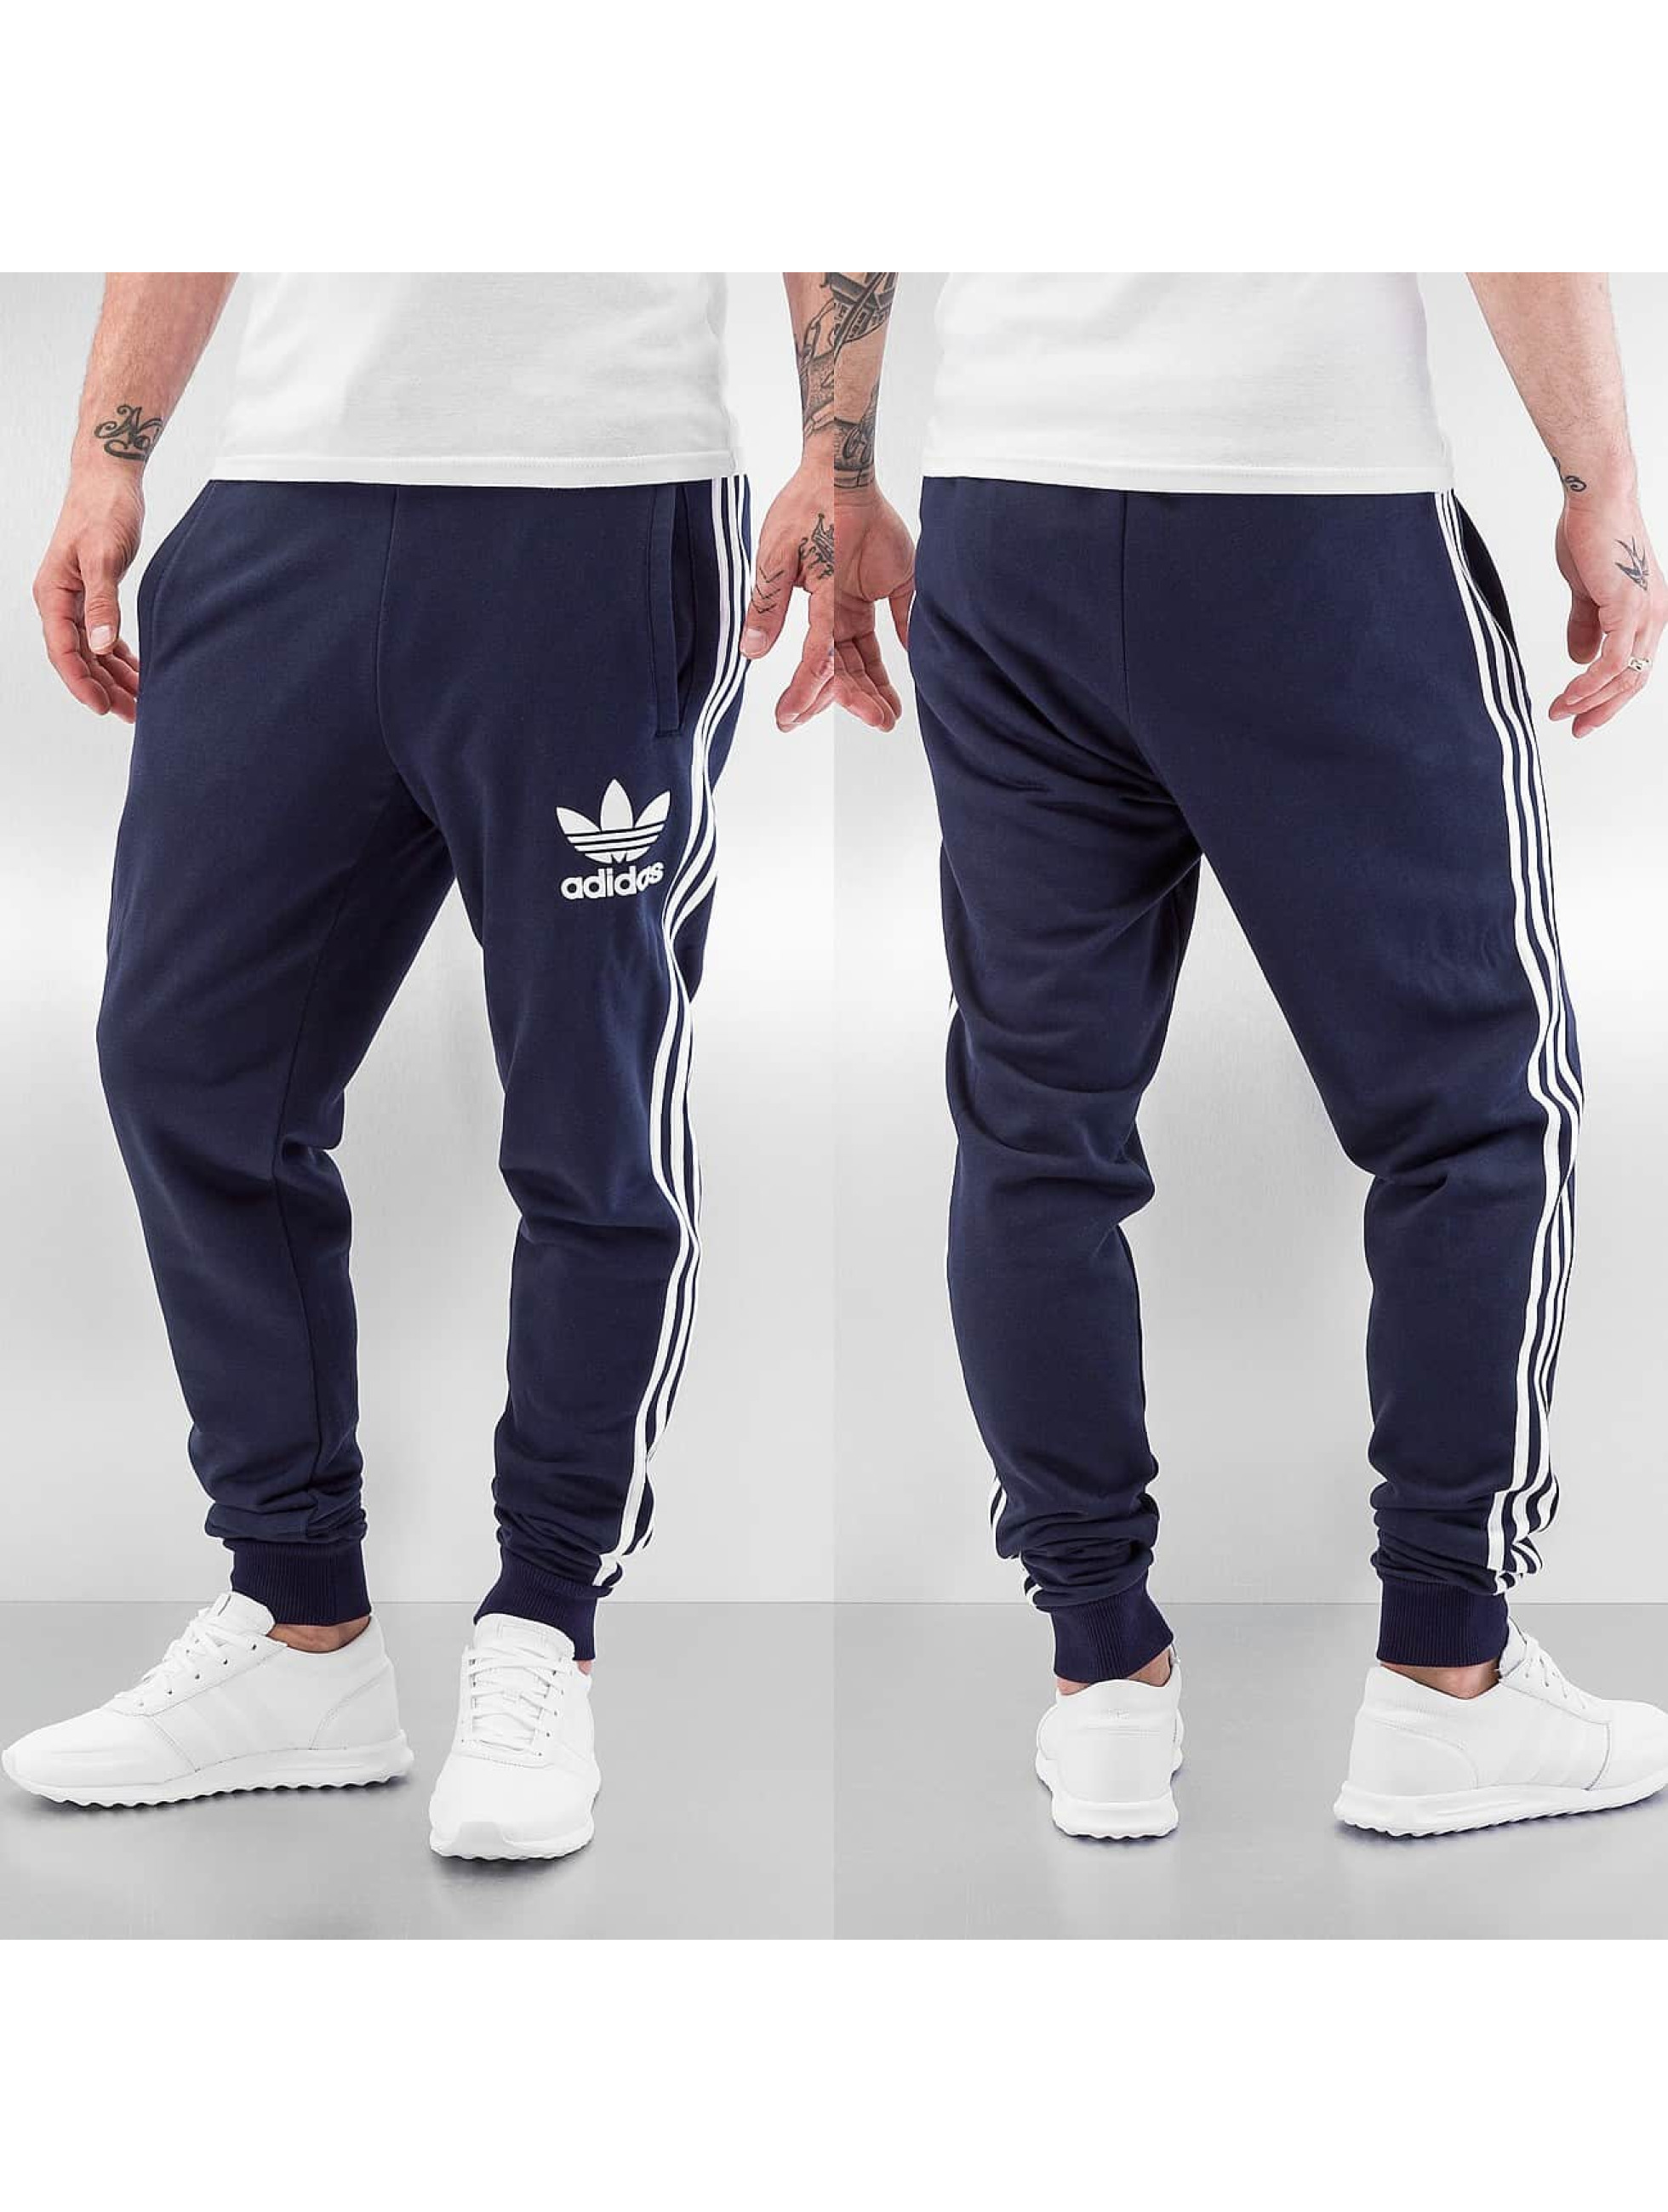 adidas herren hosen jogginghose clfn cuffed french terry ebay. Black Bedroom Furniture Sets. Home Design Ideas